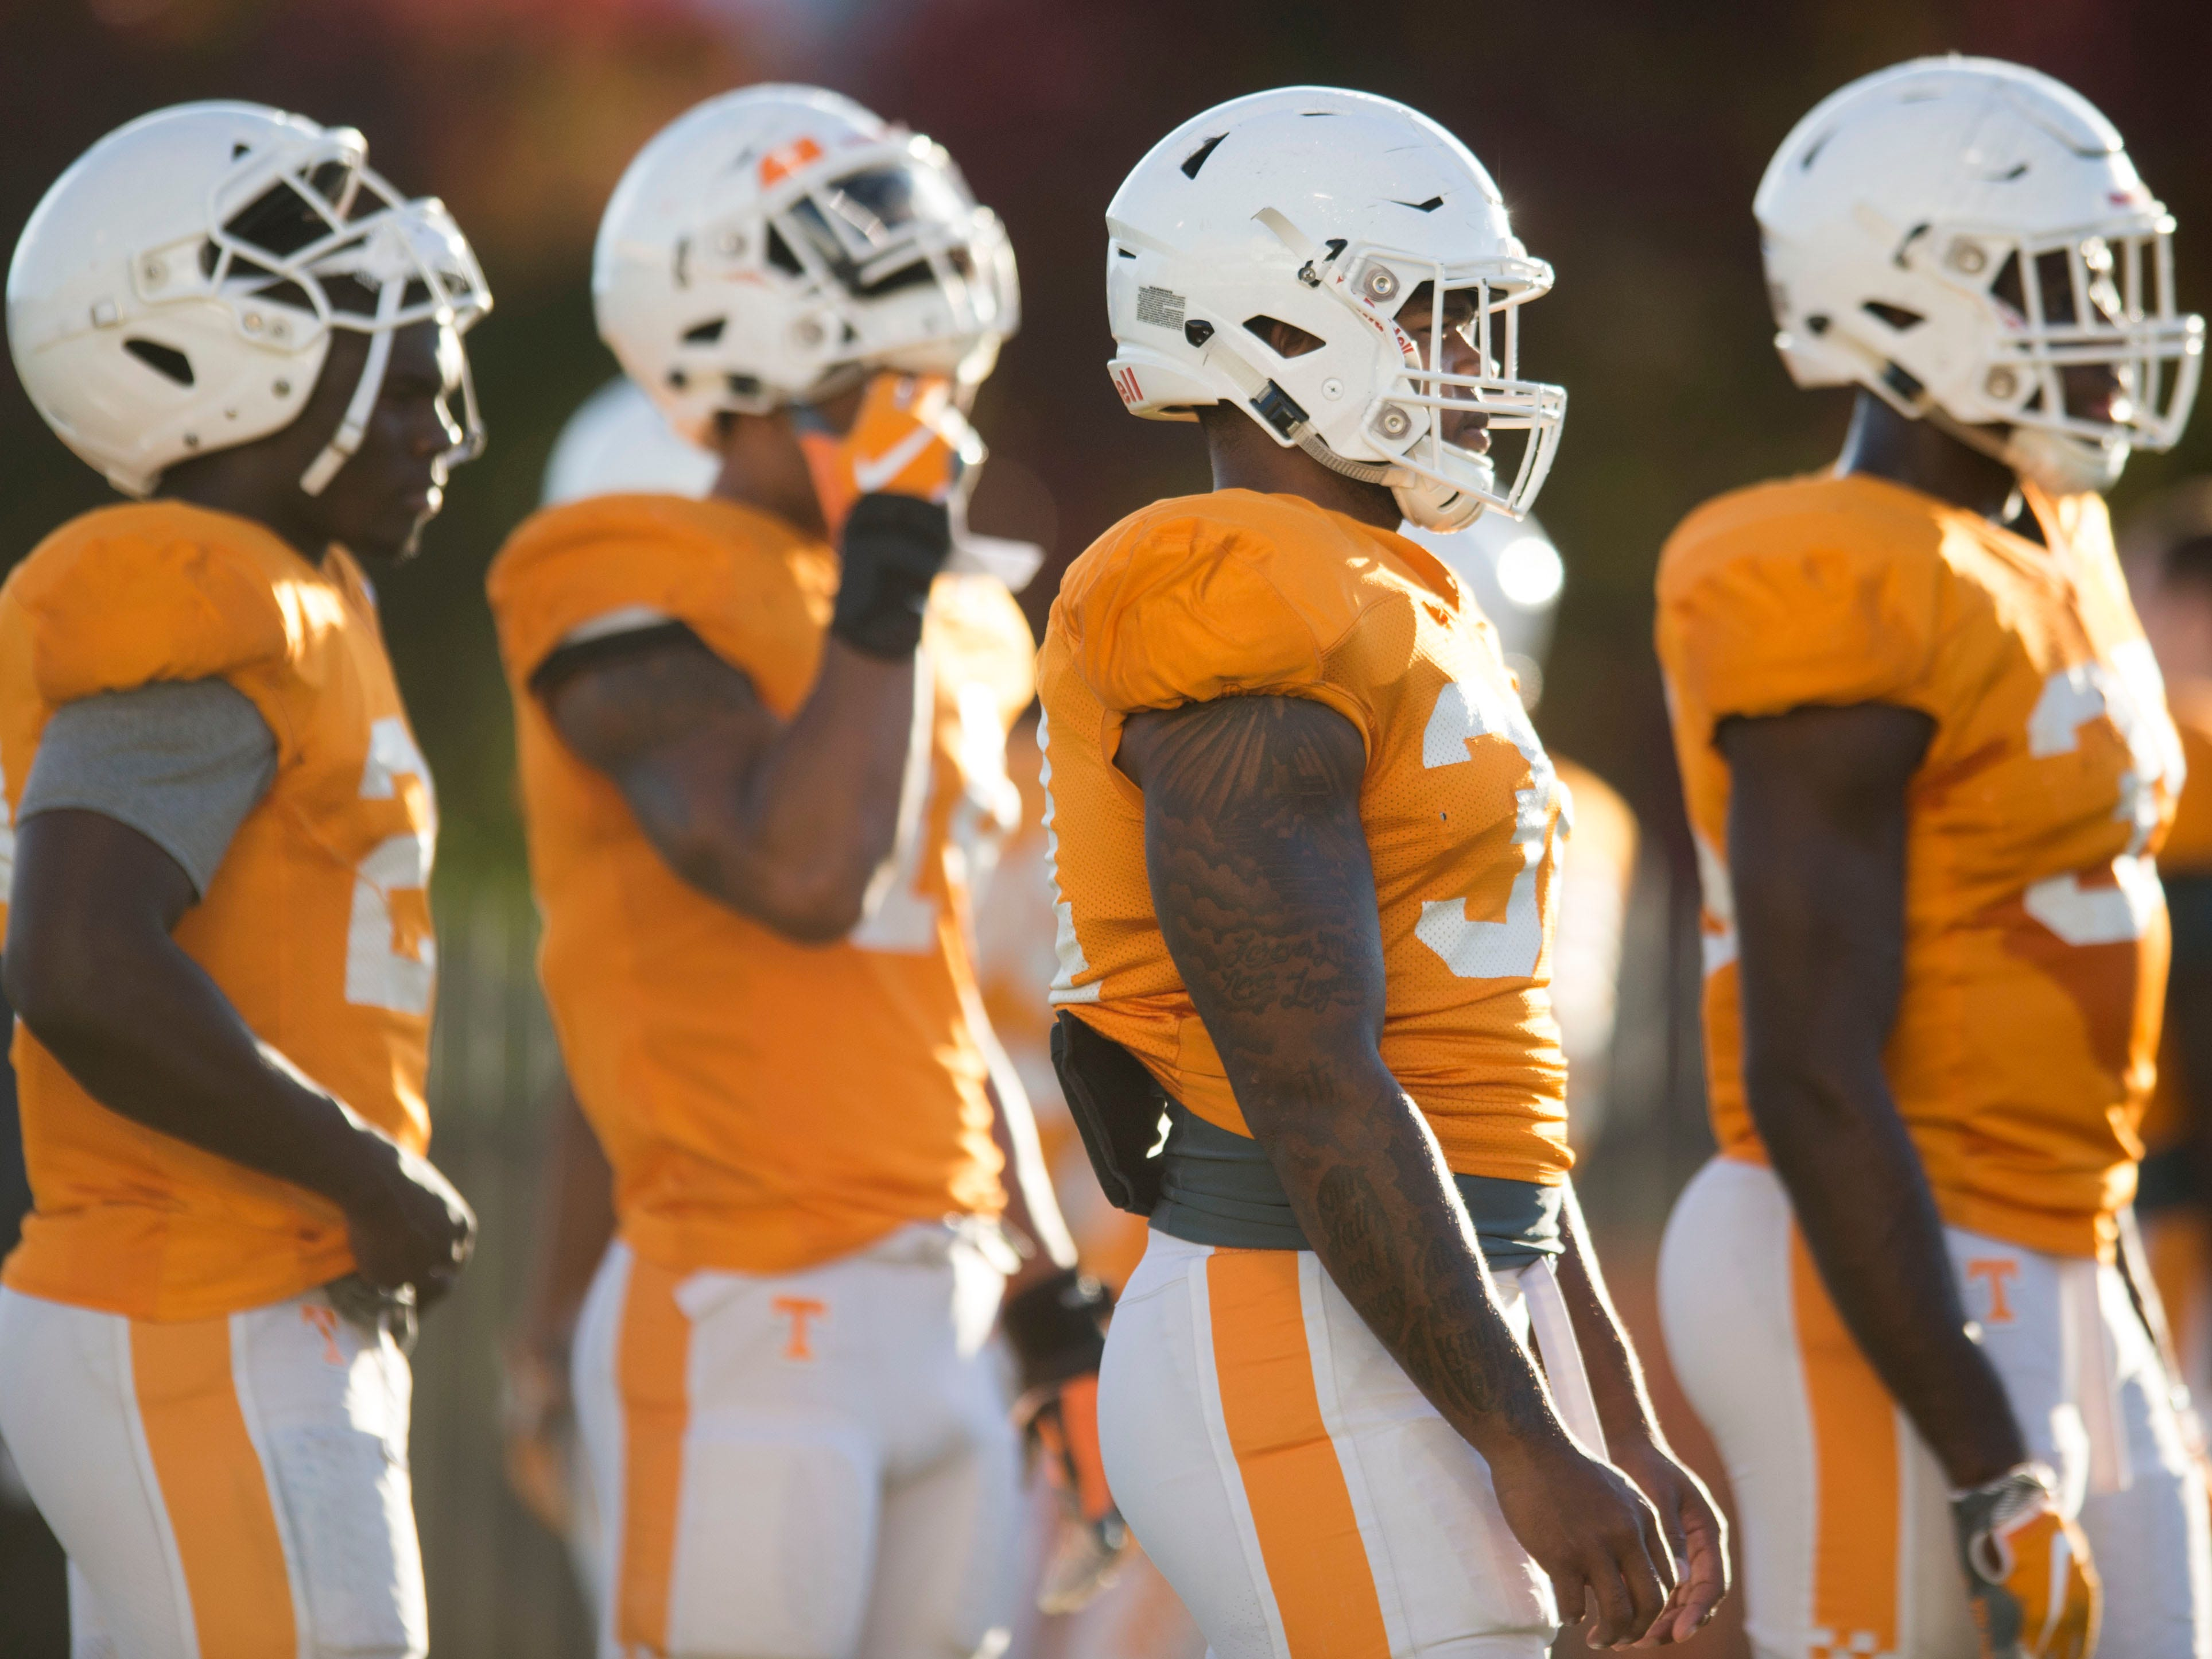 Tennessee football practice on Tuesday, November 6, 2018.